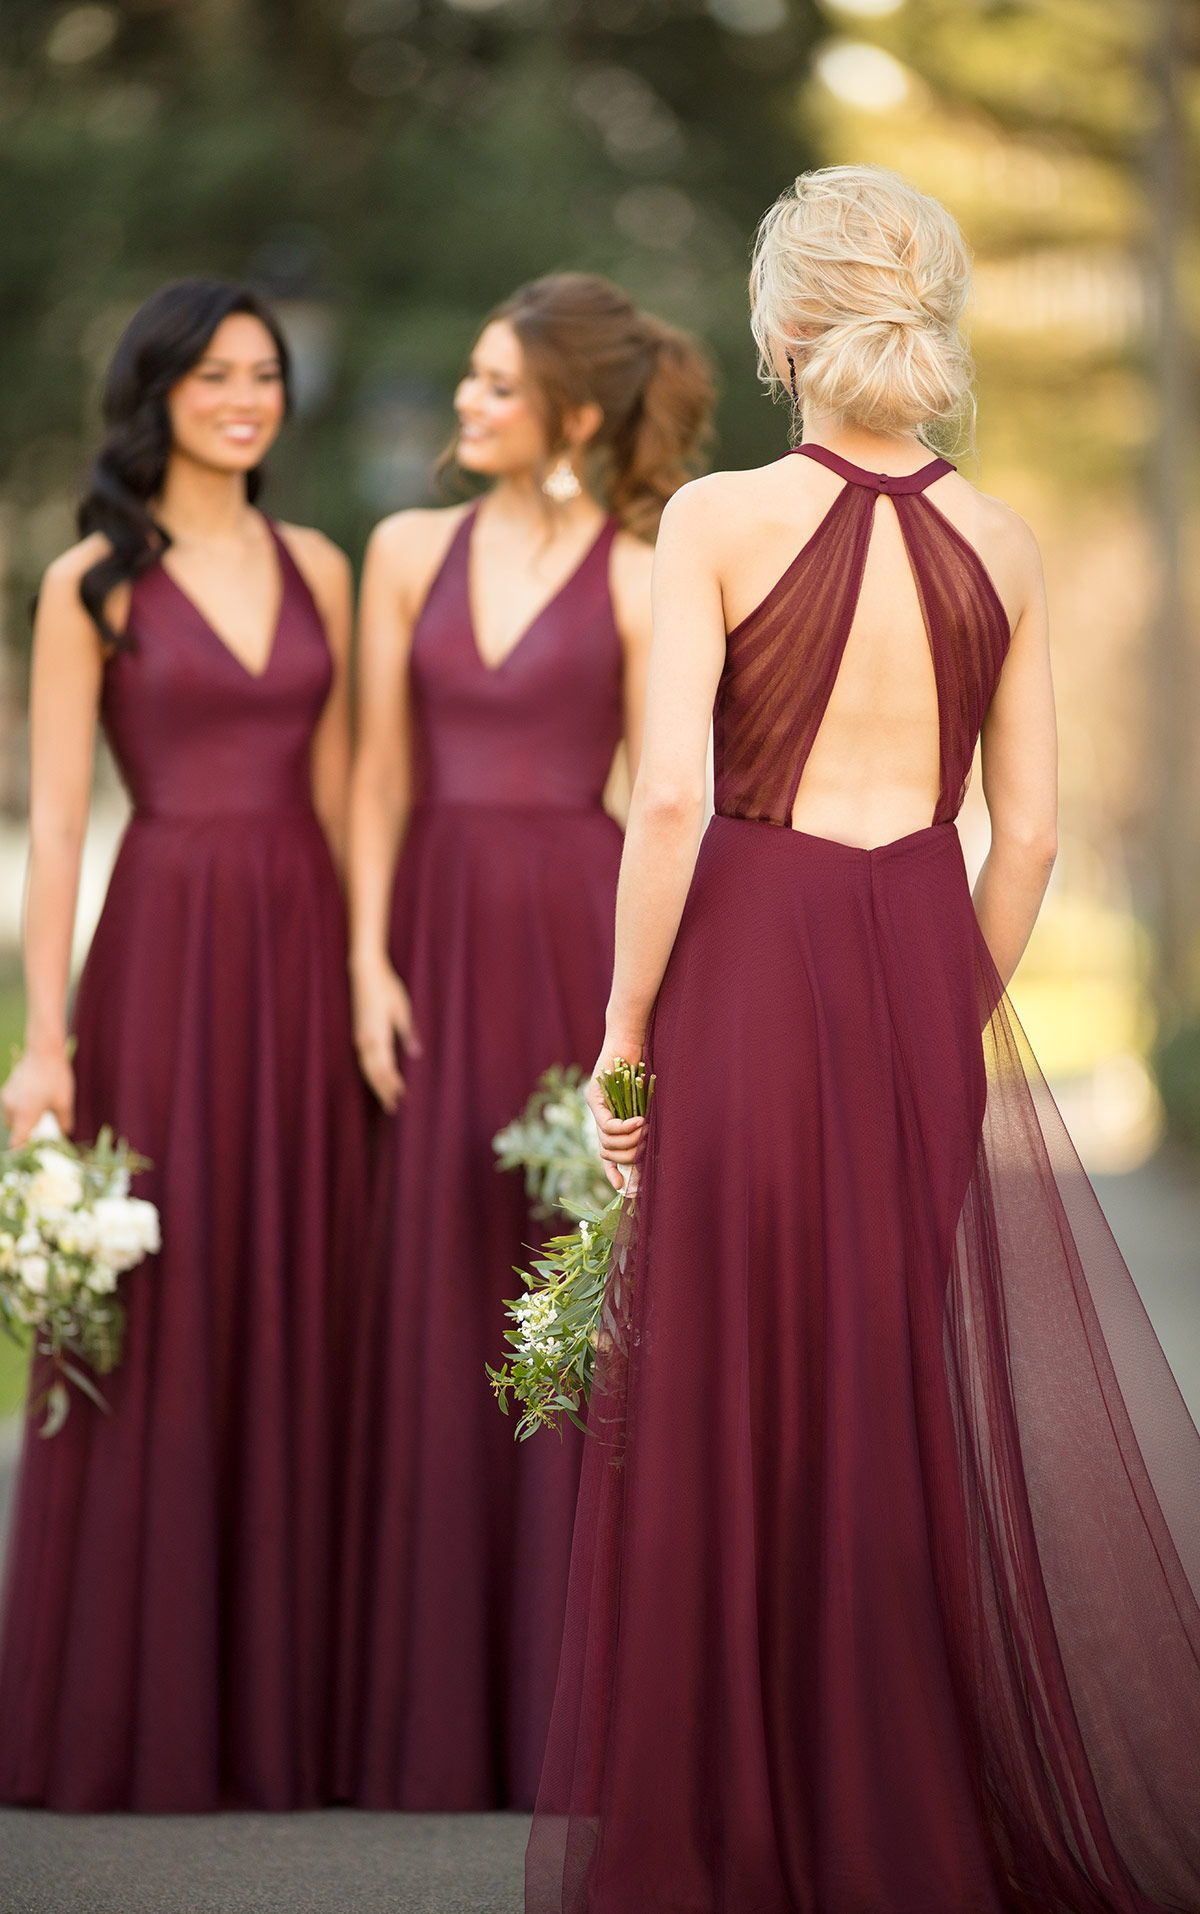 Wedding Party Michelle S Bridal And Tuxedo Wedding Bridesmaid Dresses Wedding Bridesmaids Bridesmaid Dresses